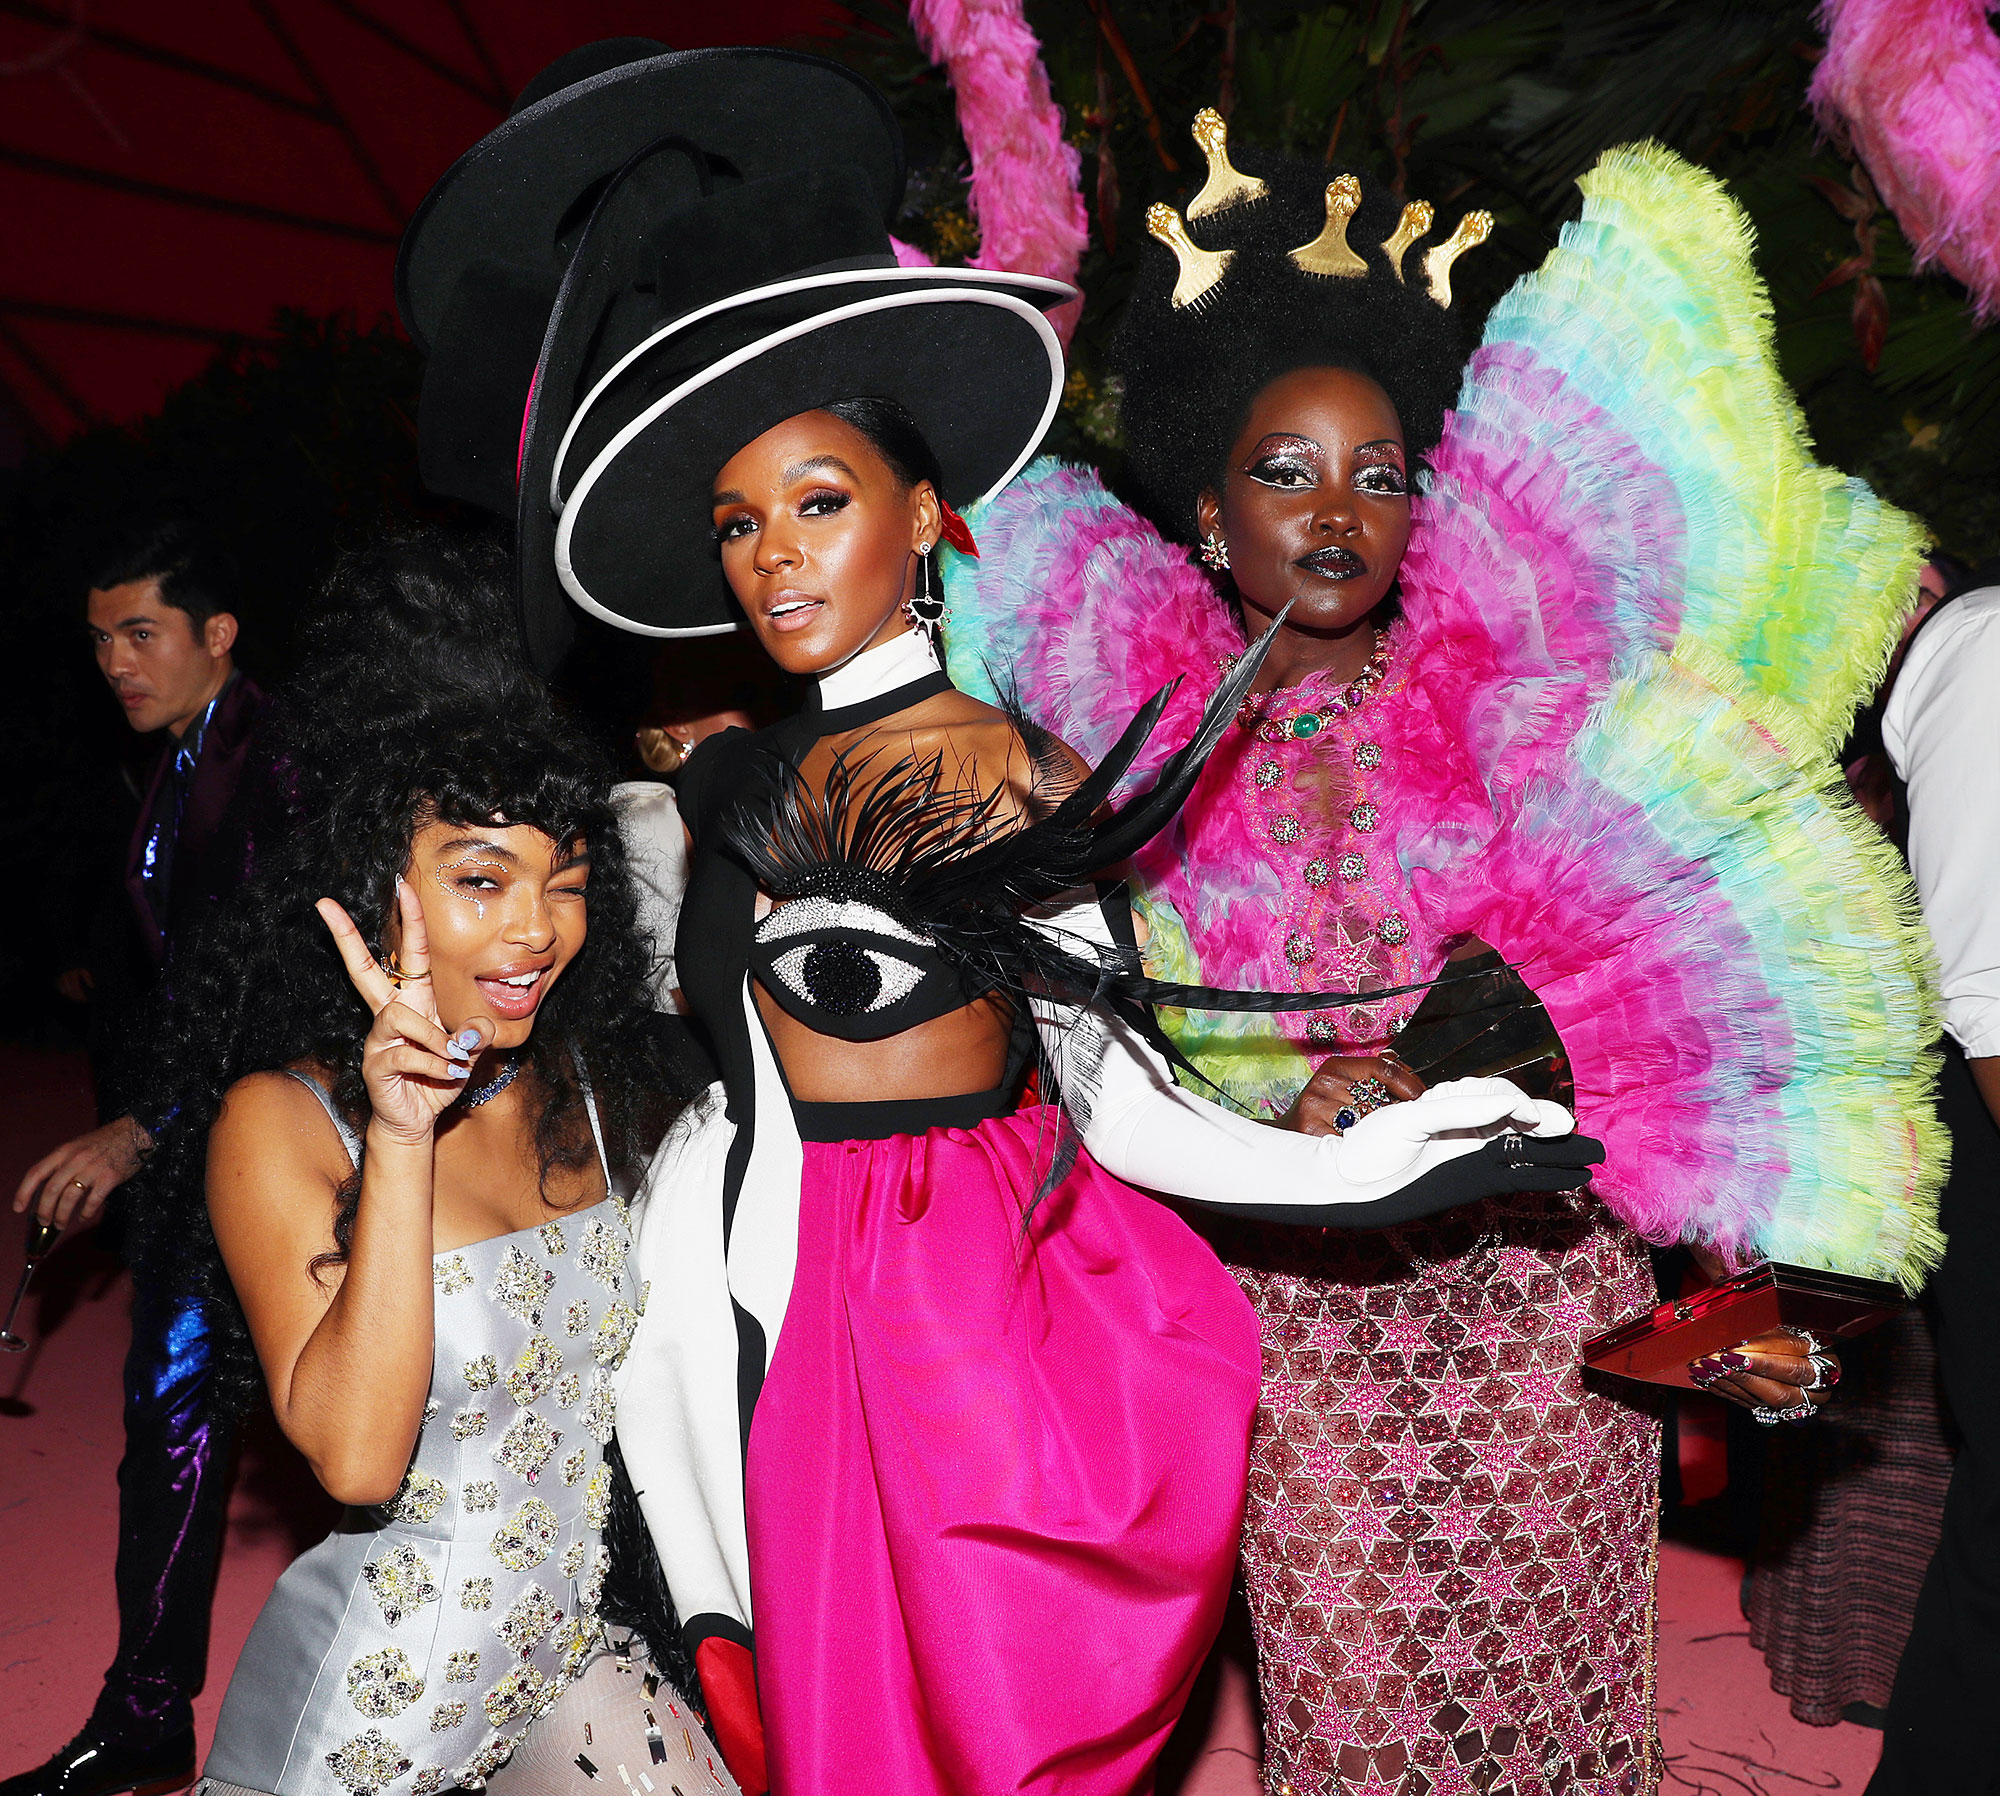 Met Gala 2019 What You Didnt See Yara Shahidi Janelle Monae Lupita Nyong'o - Yara Shahidi, Janelle Monae and Lupita Nyong'o took a silly snap inside the event.